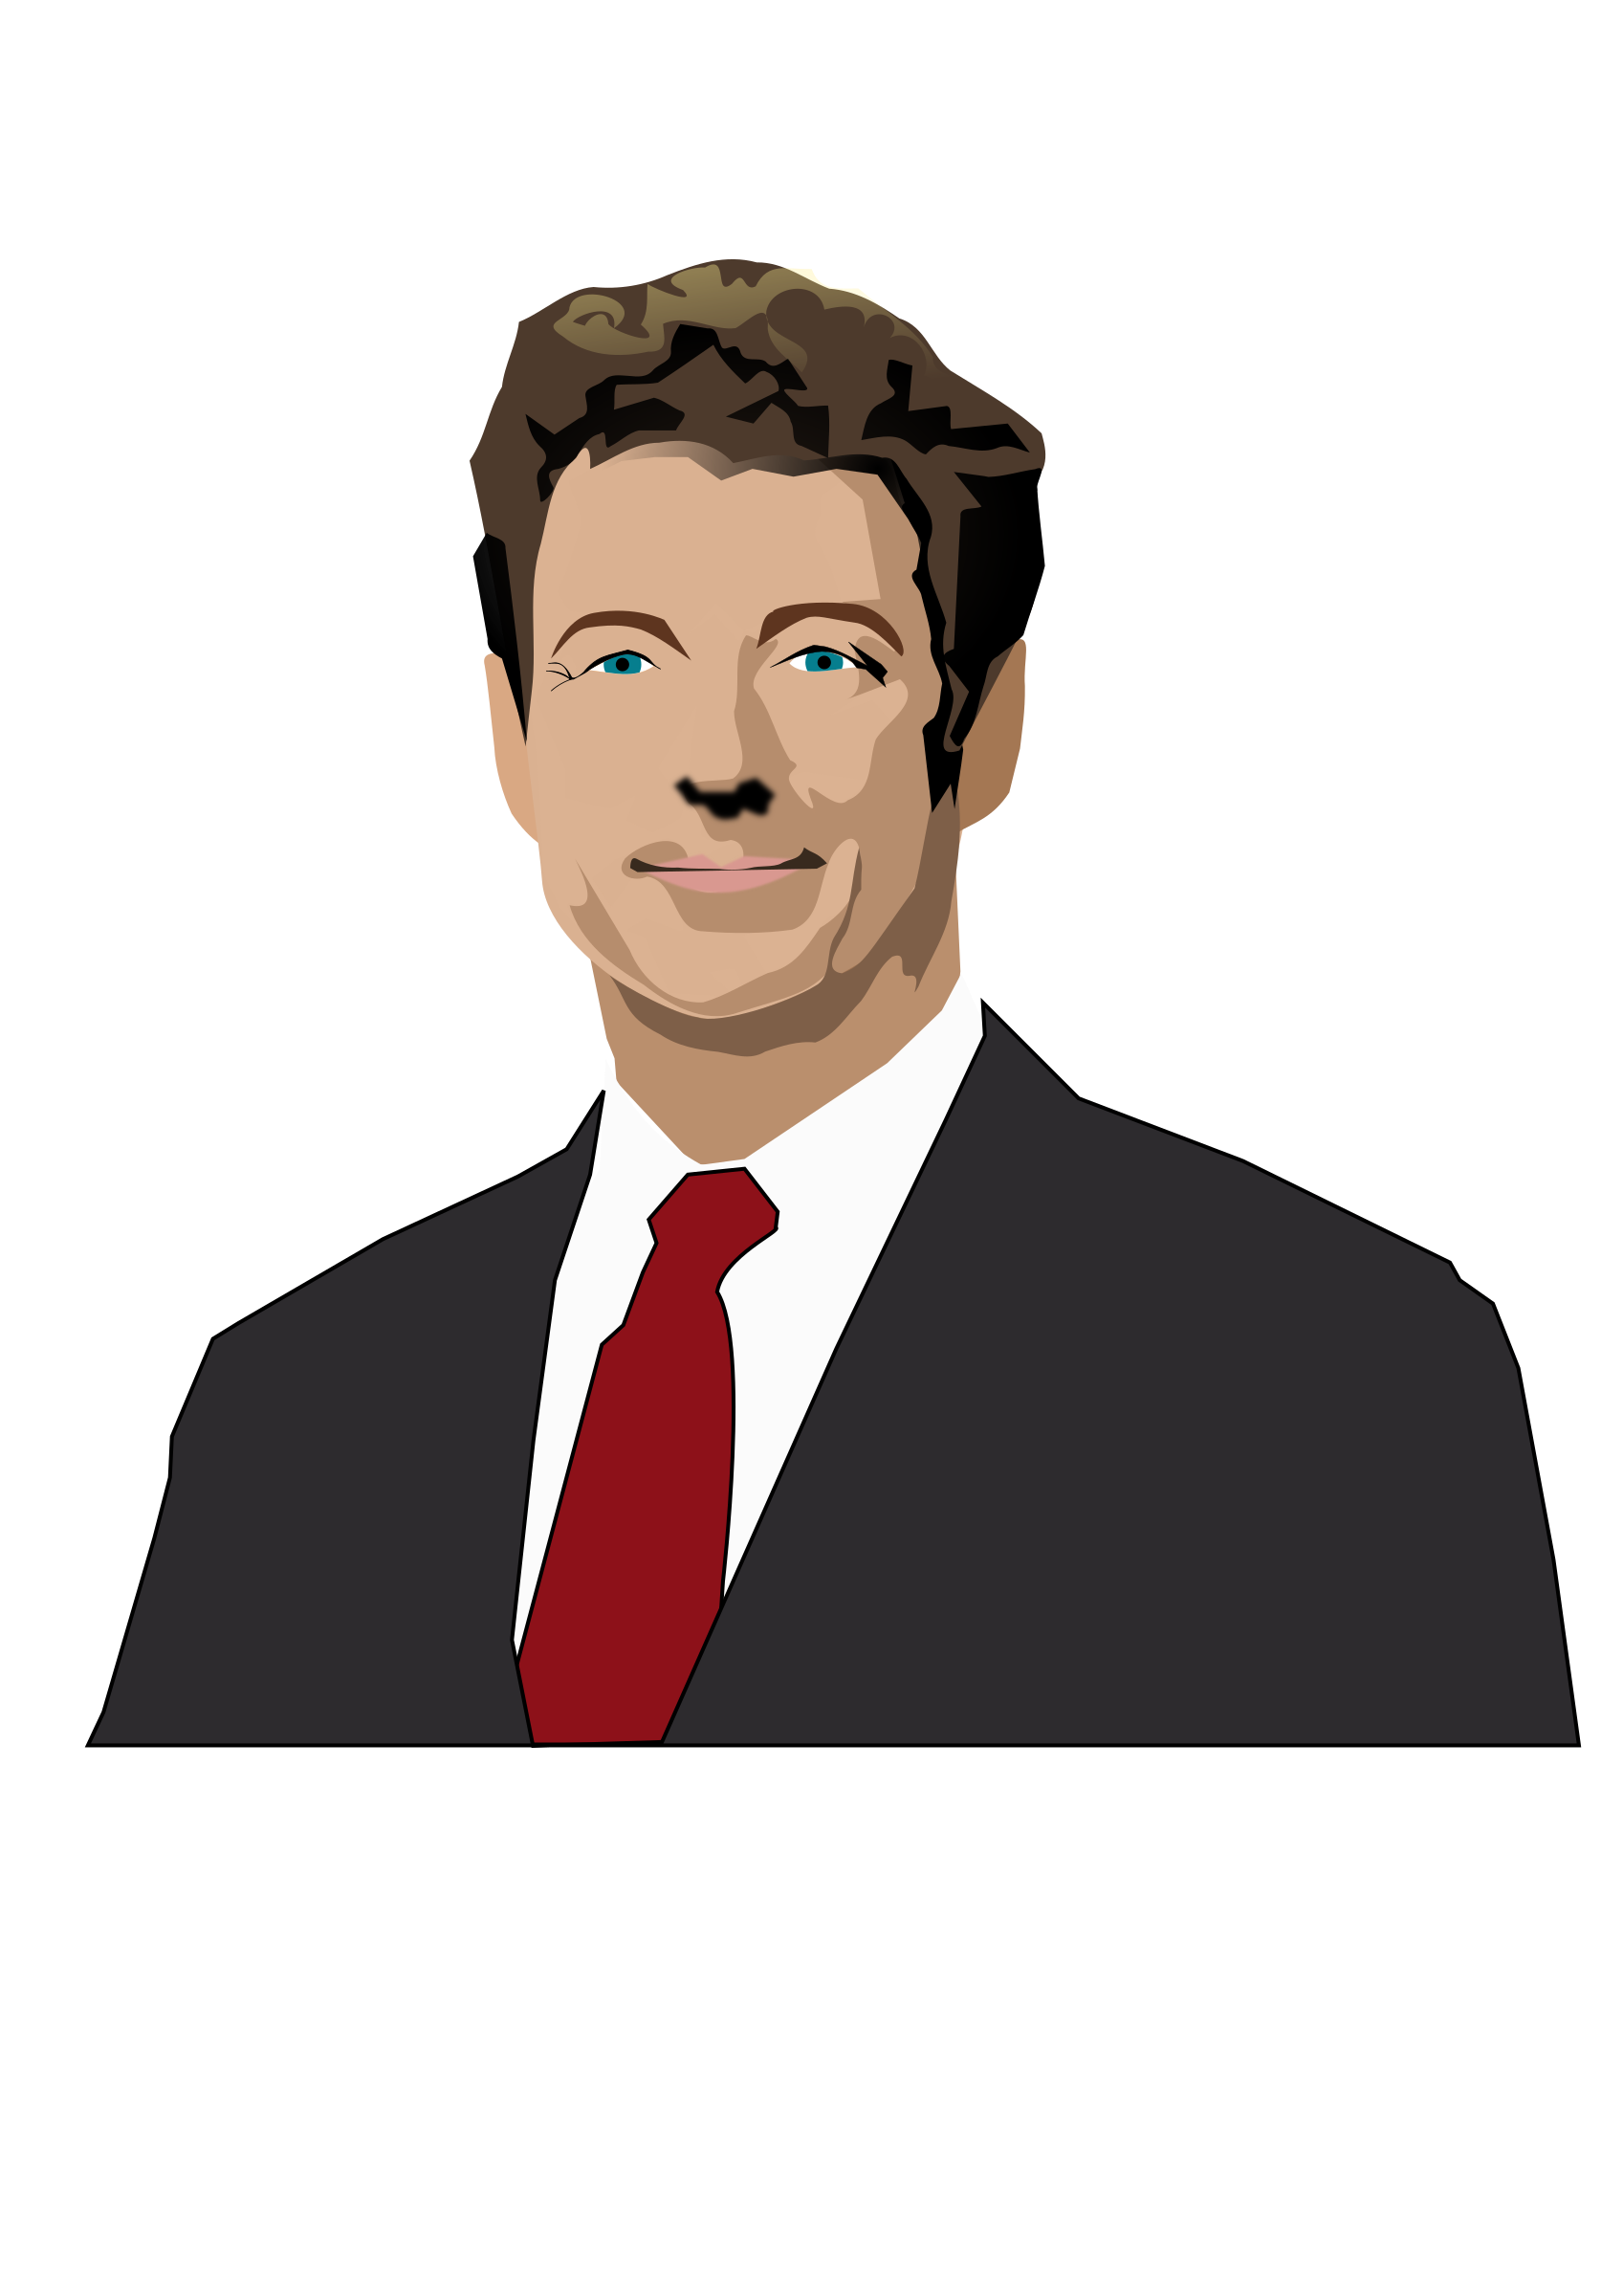 Rand Paul by jesseakc